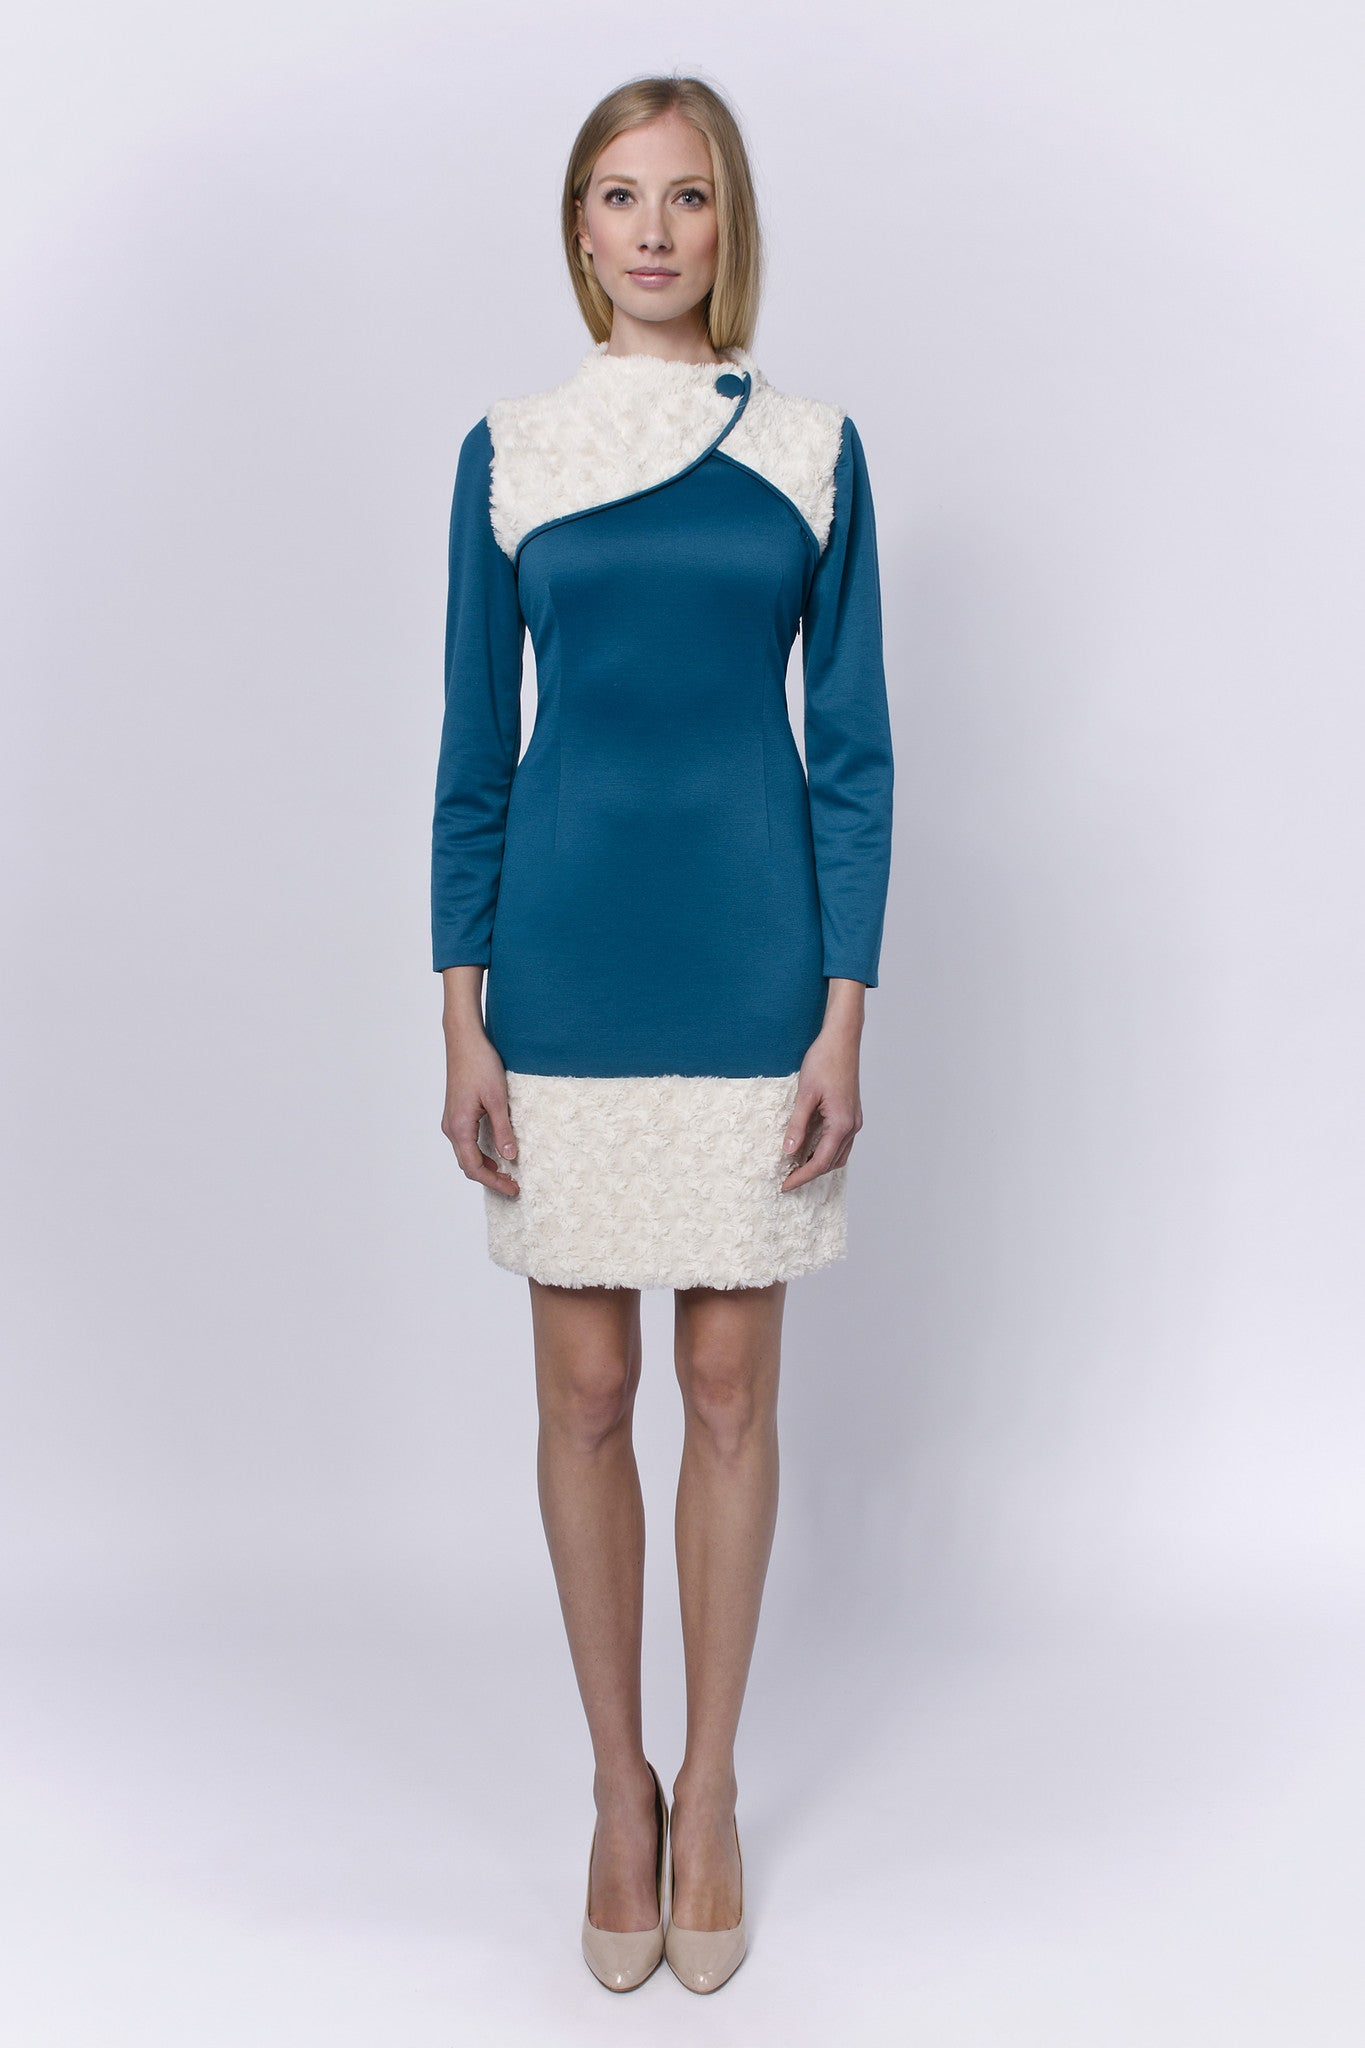 Allegretto-turquoise-cotton-dress-with-white-fur-Laccafashion-Allegretto